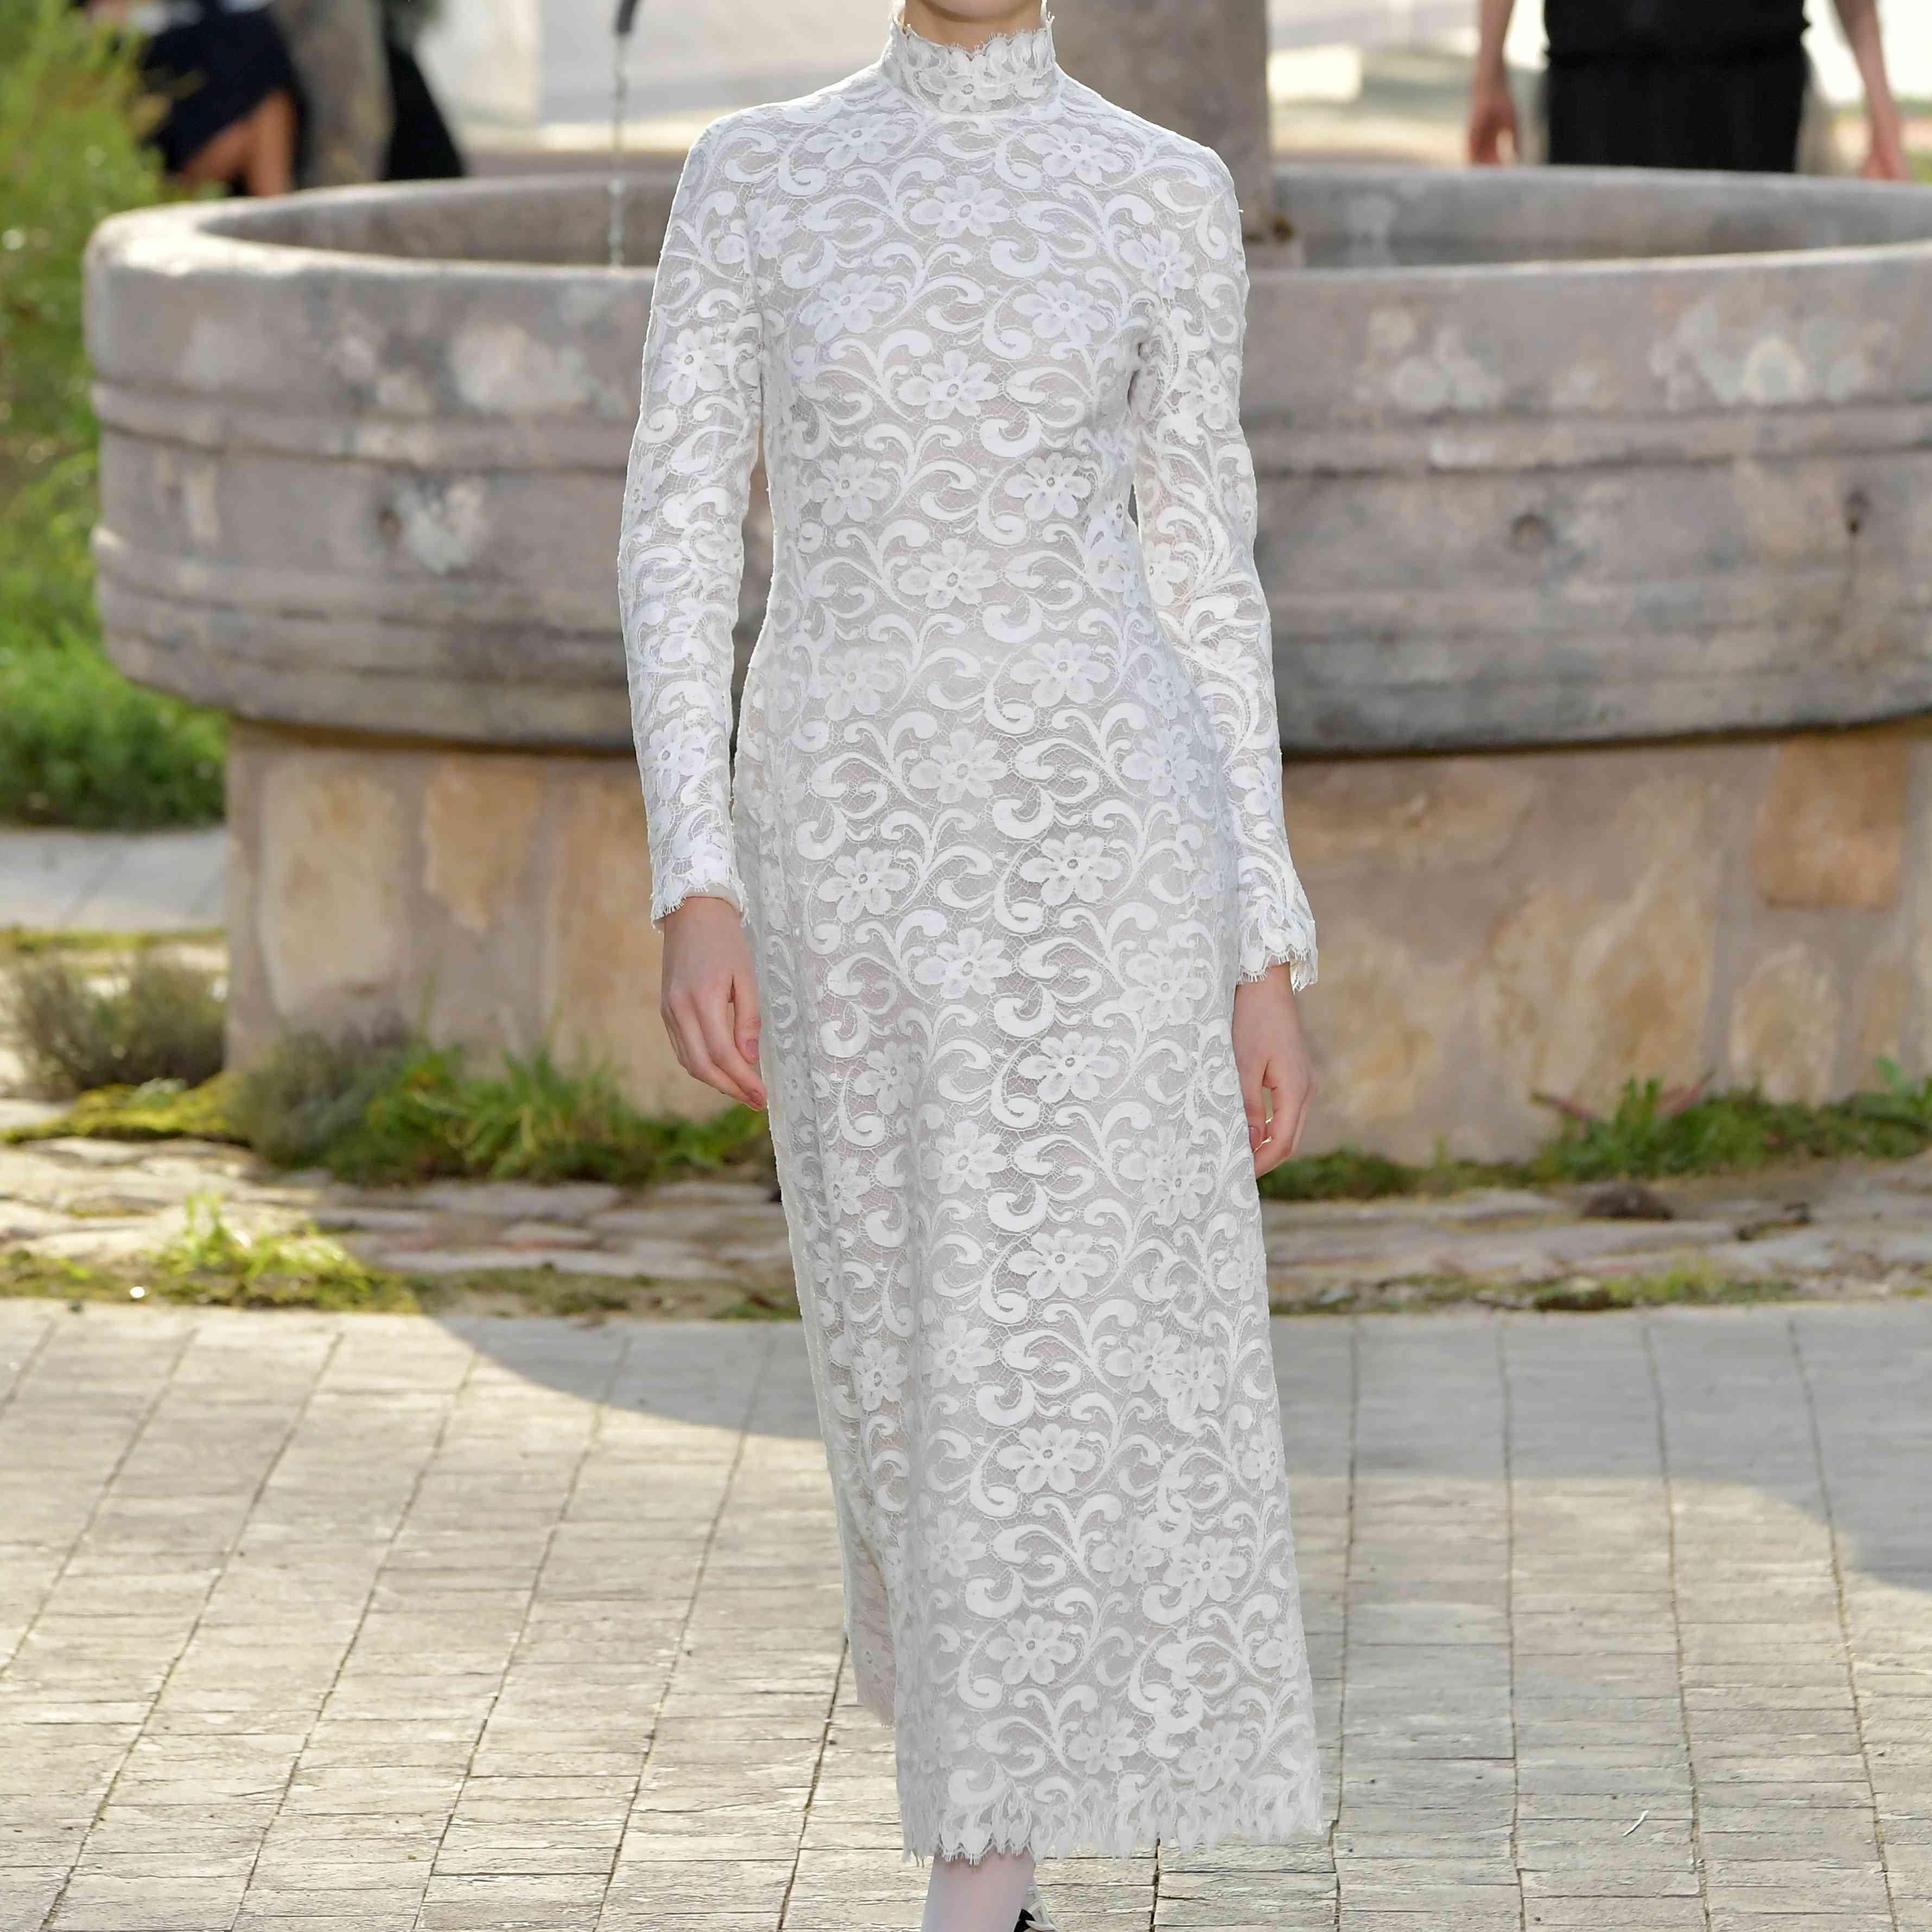 Chanel Spring Summer 2020 couture